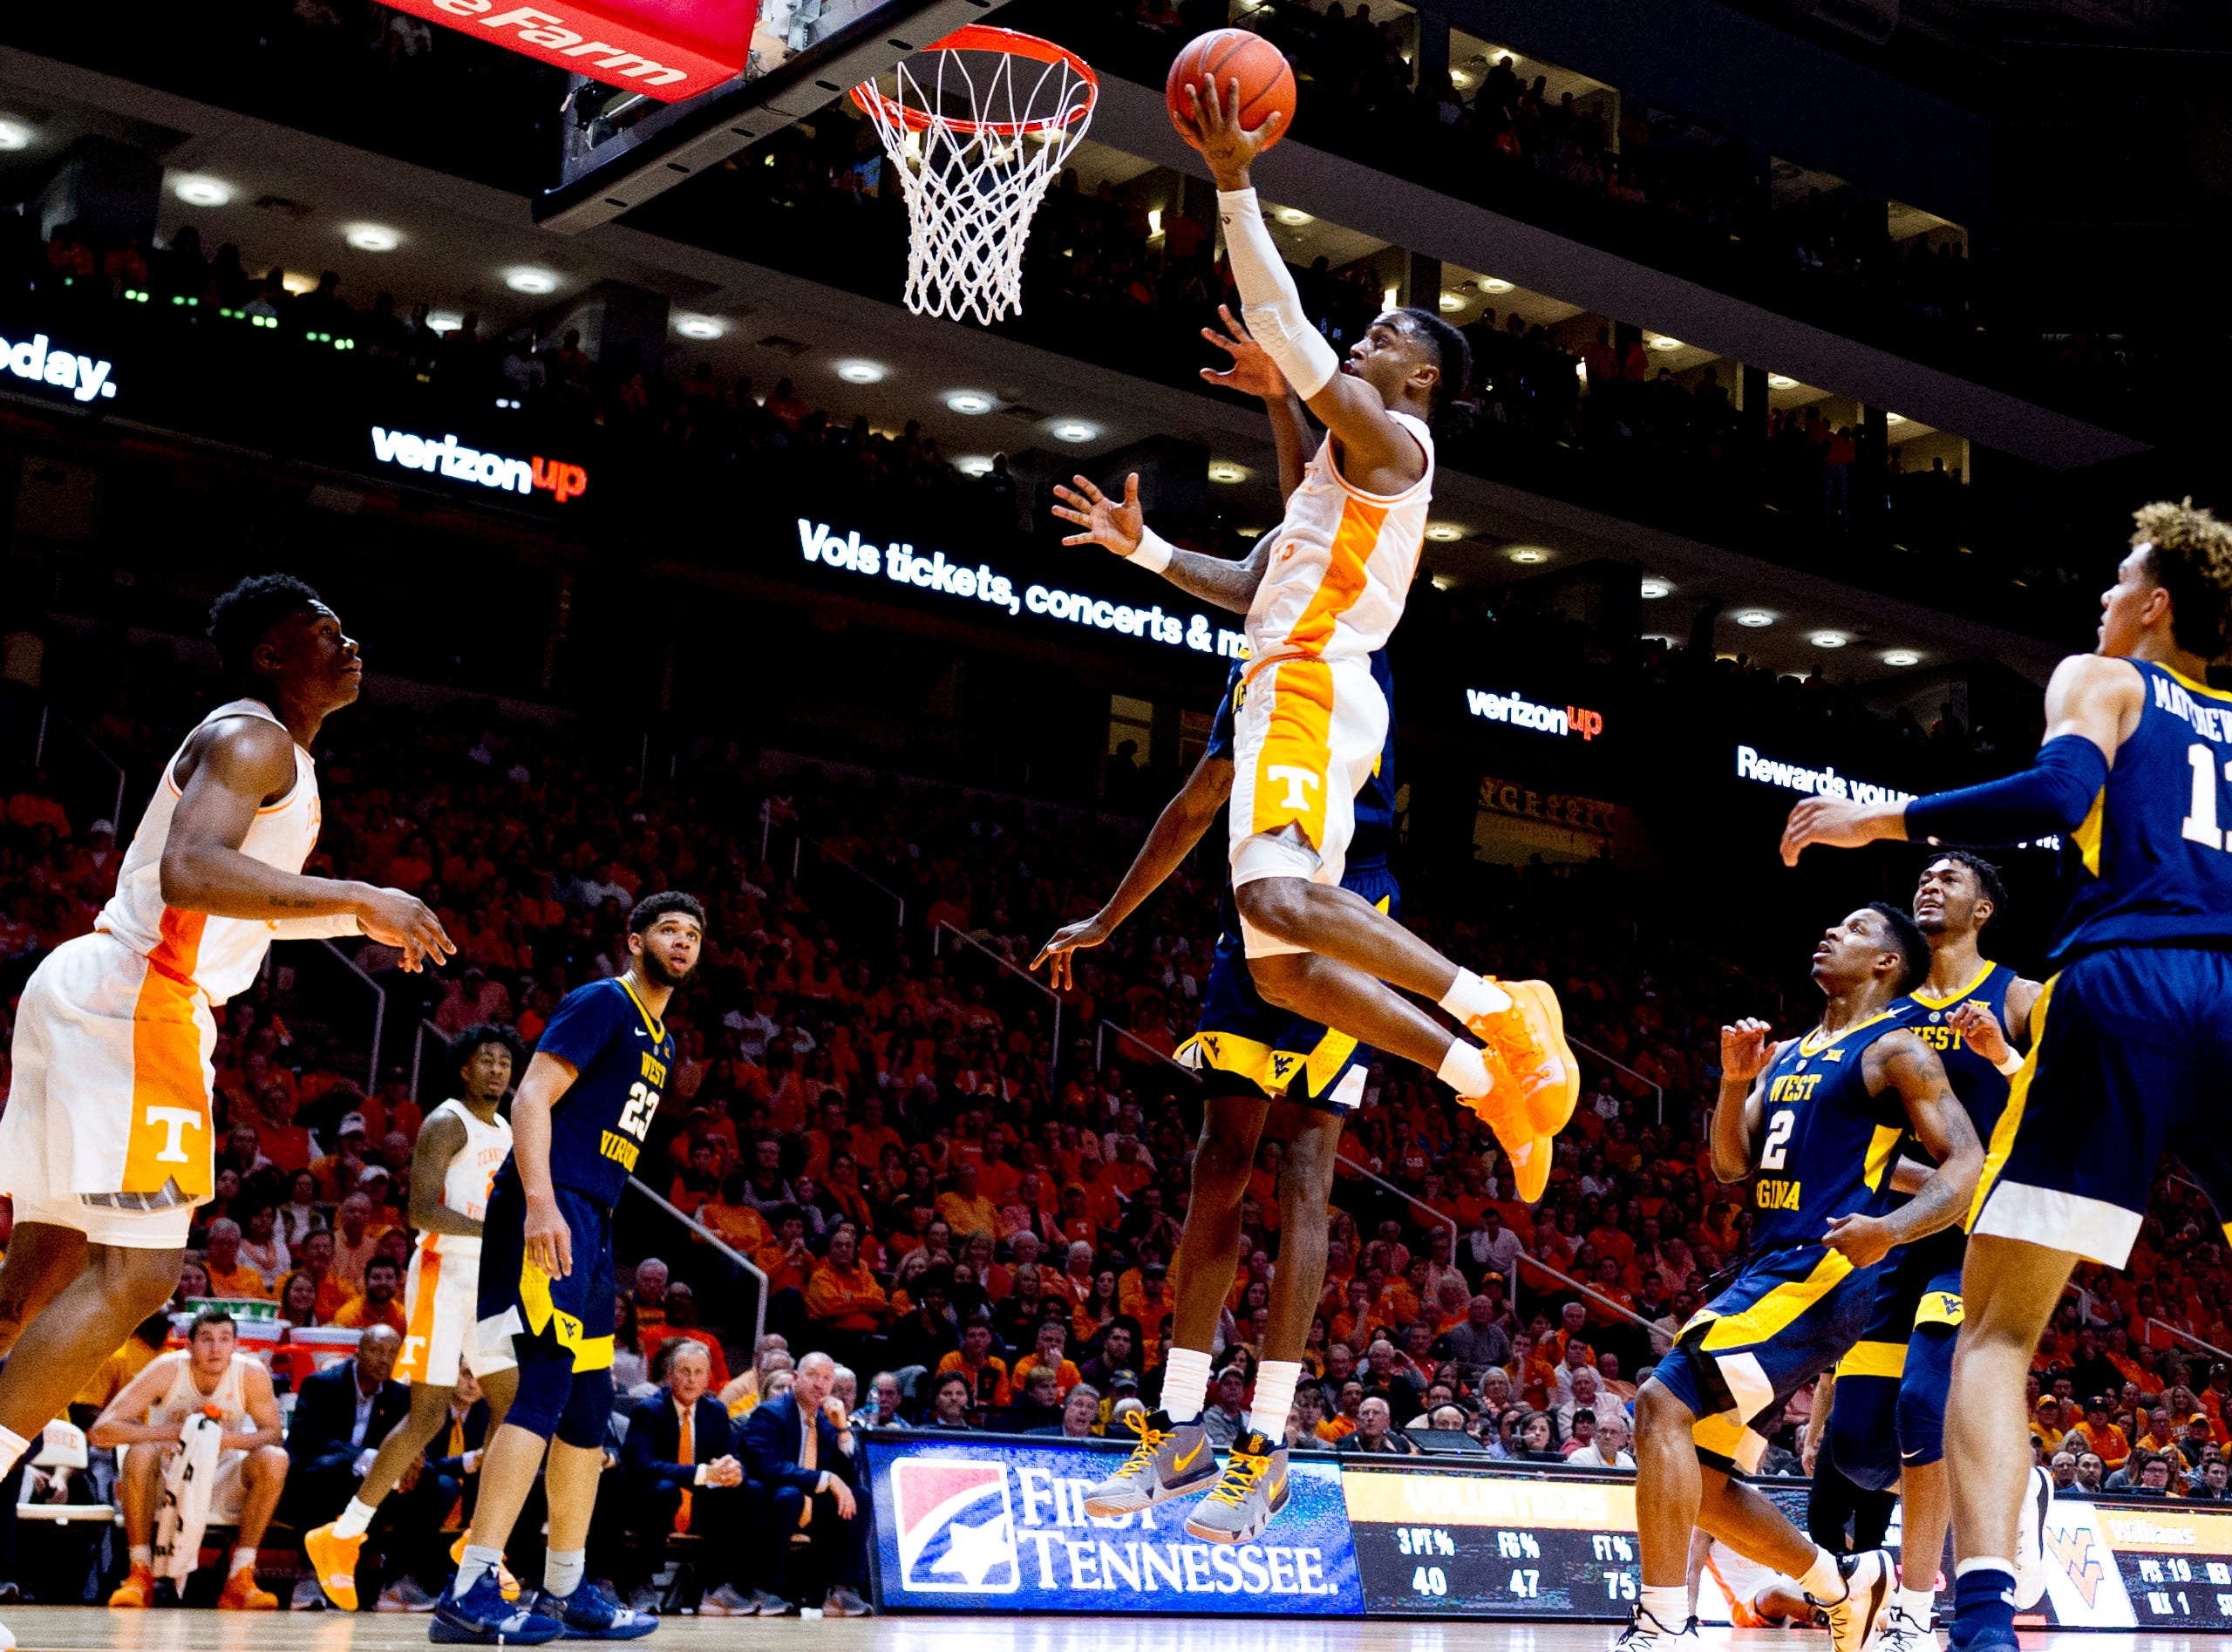 Tennessee guard Jordan Bone (0) shoots the ball during a SEC/Big 12 Challenge game between Tennessee and West Virginia at Thompson-Boling Arena in Knoxville, Tennessee on Saturday, January 26, 2019.